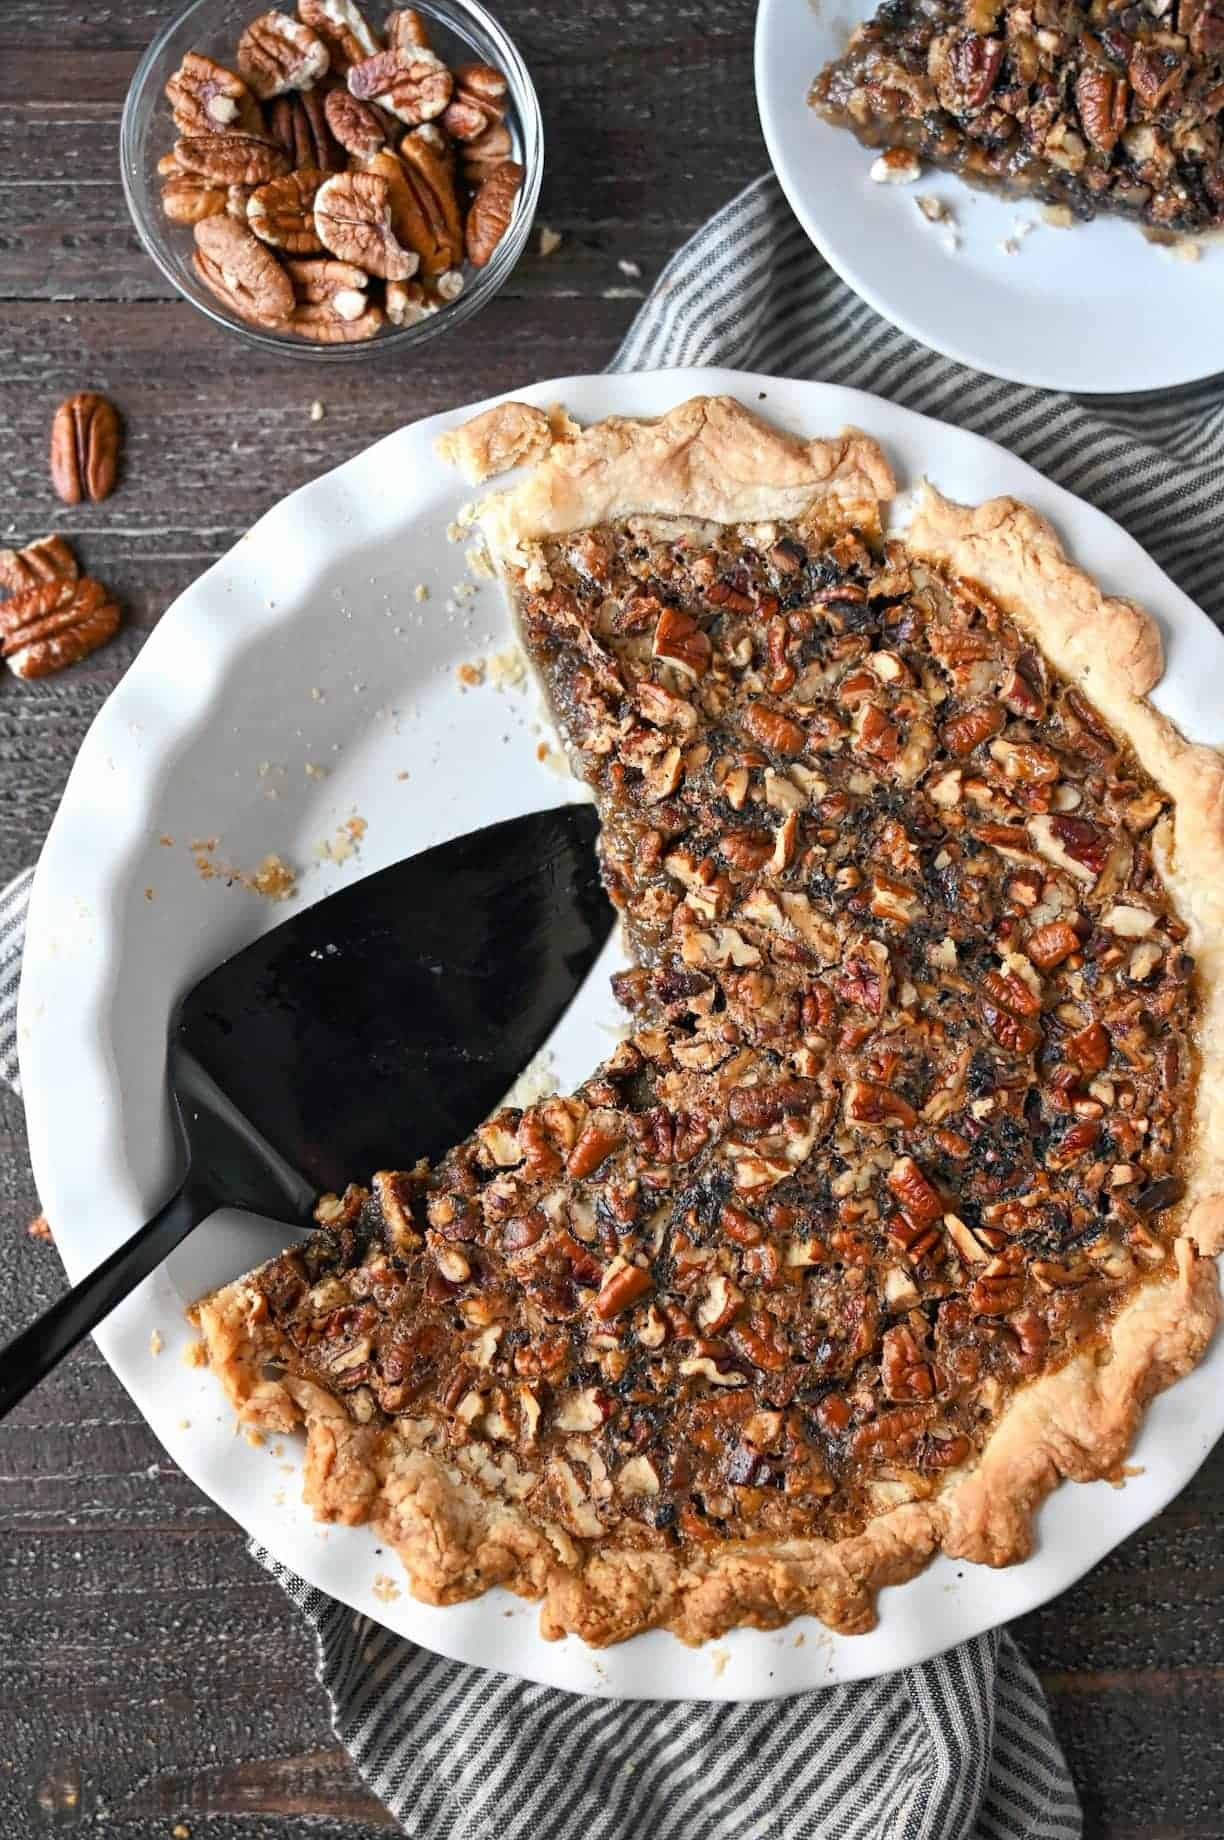 A maple pecan pie in a pie dish with two pieces removed.